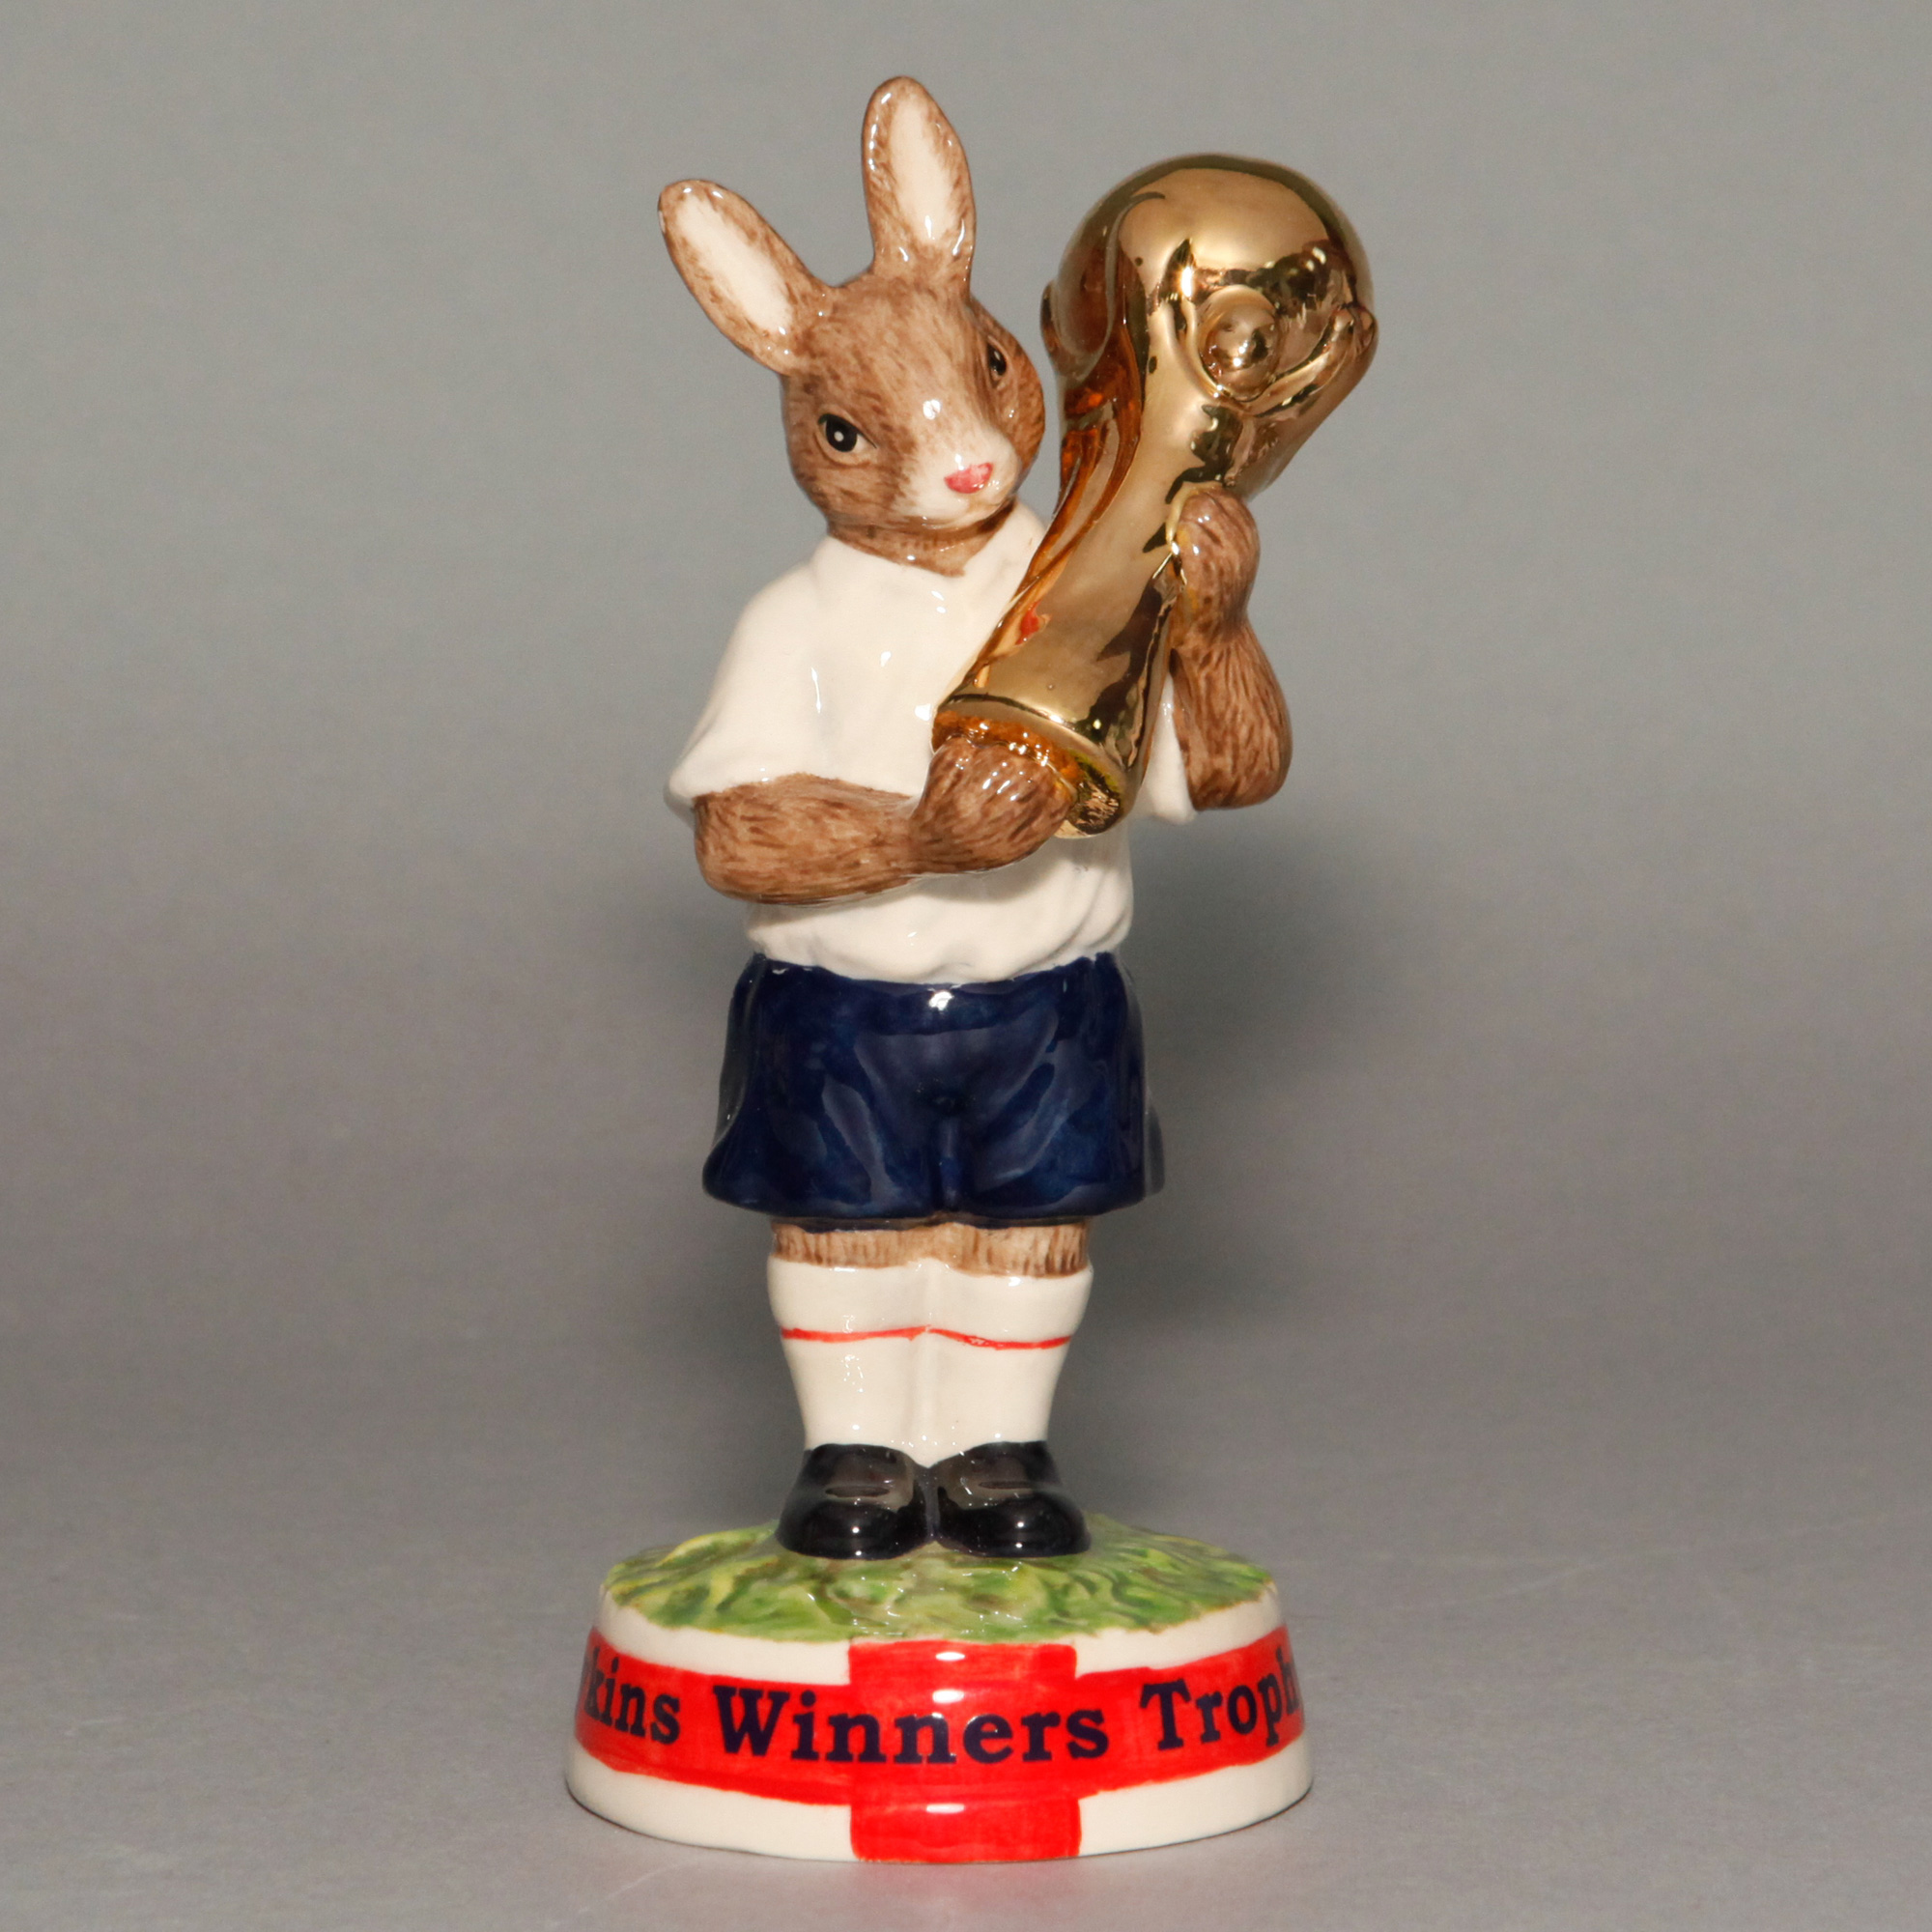 Cup Winners Trophy 2006 DB409CW - Royal Doulton Bunnykins